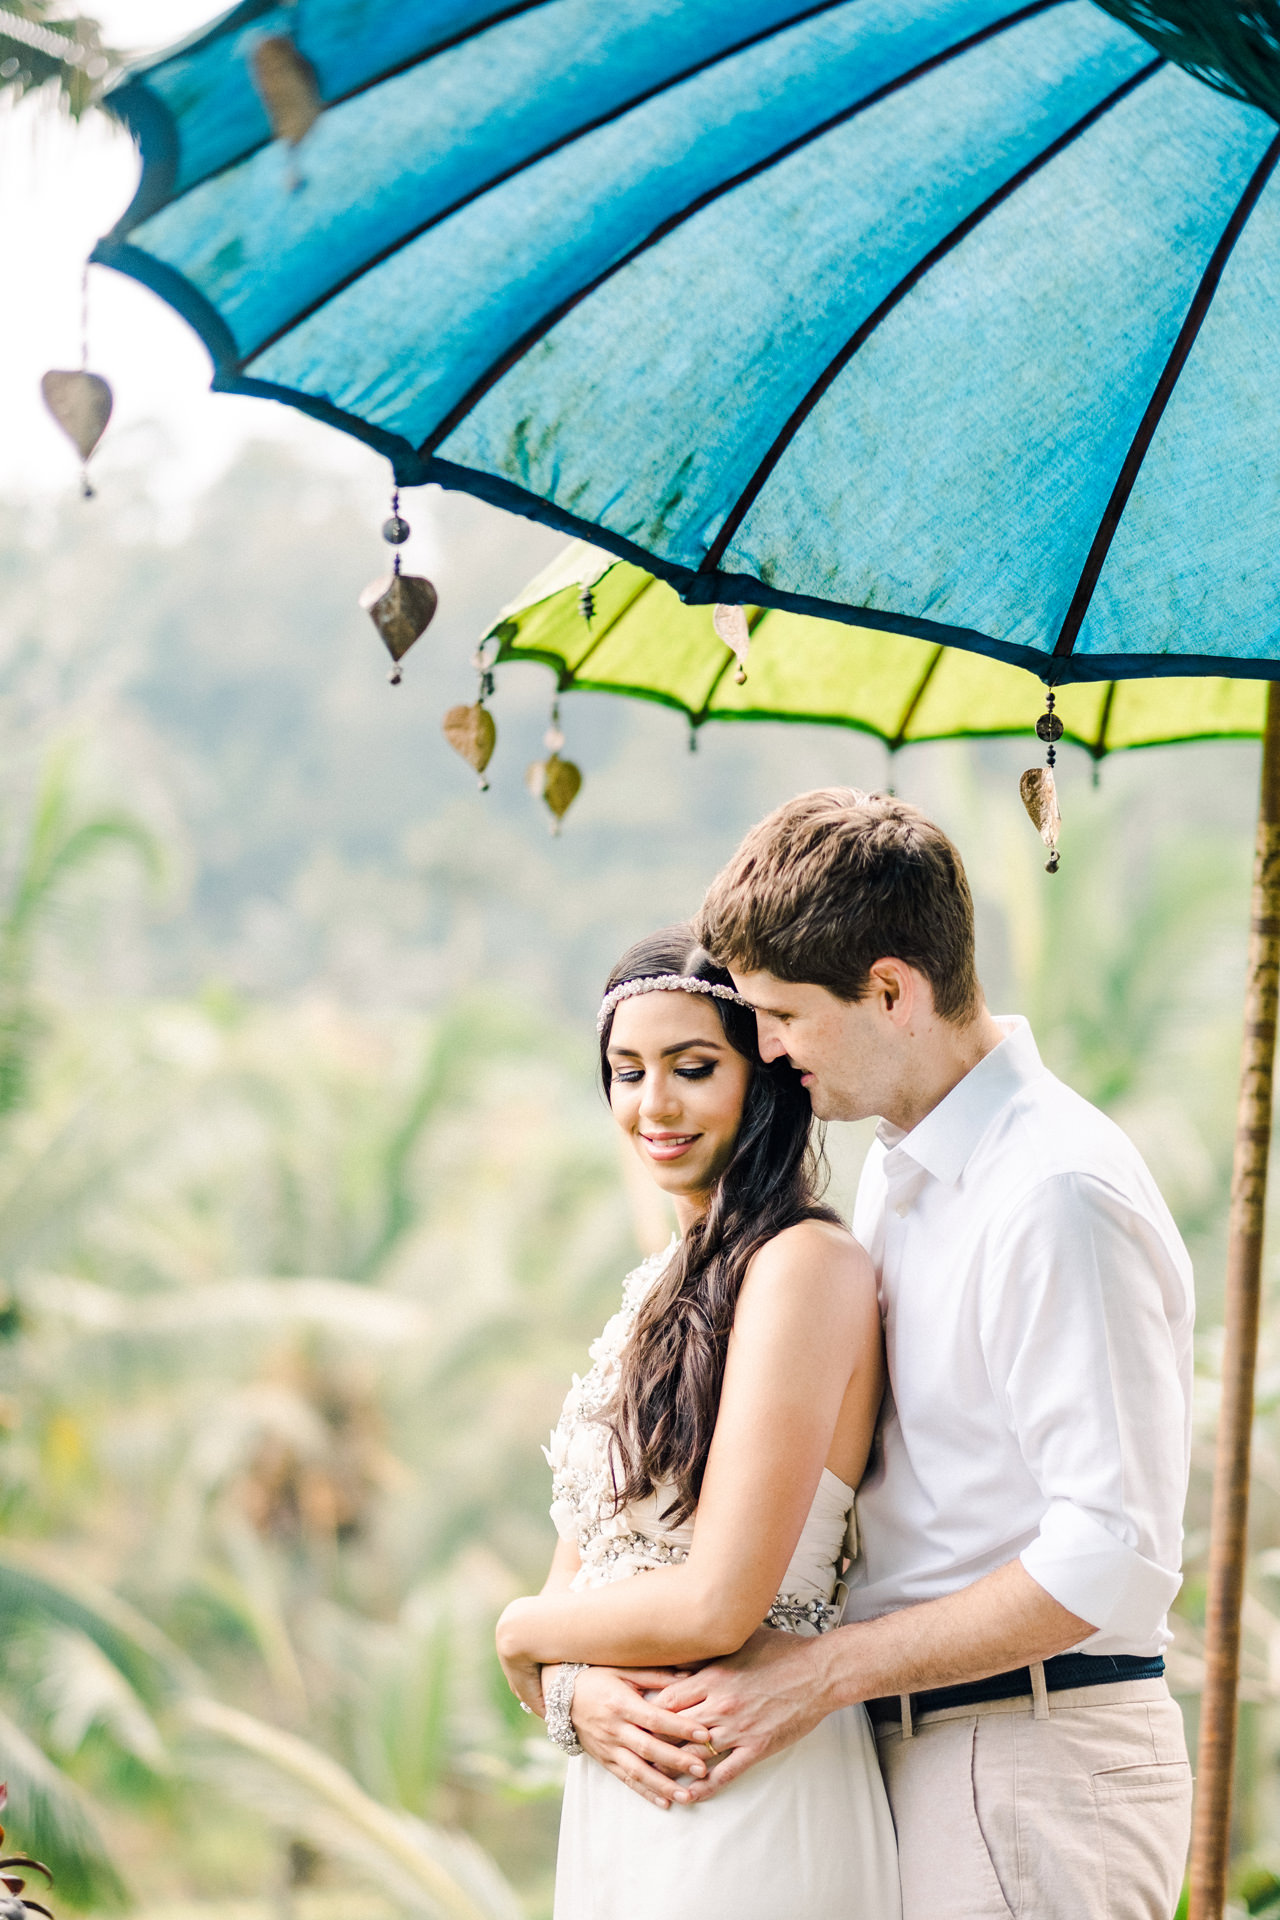 K&B: Romantic Honeymoon Photo Session in Bali 3